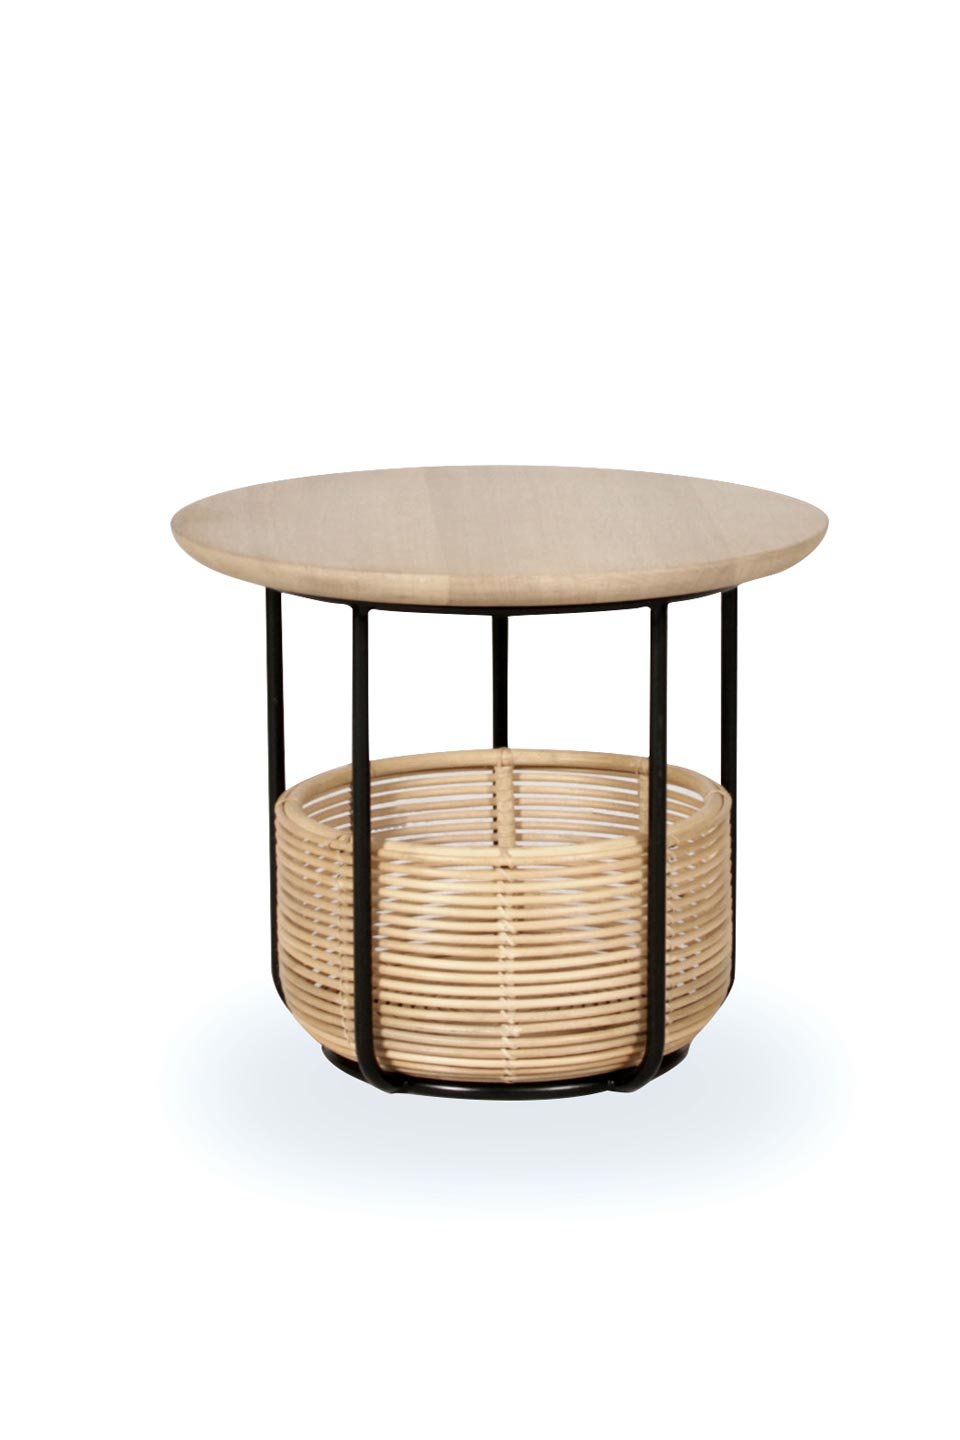 Vivi small table and basket in black metal and rattan. Vincent Sheppard.